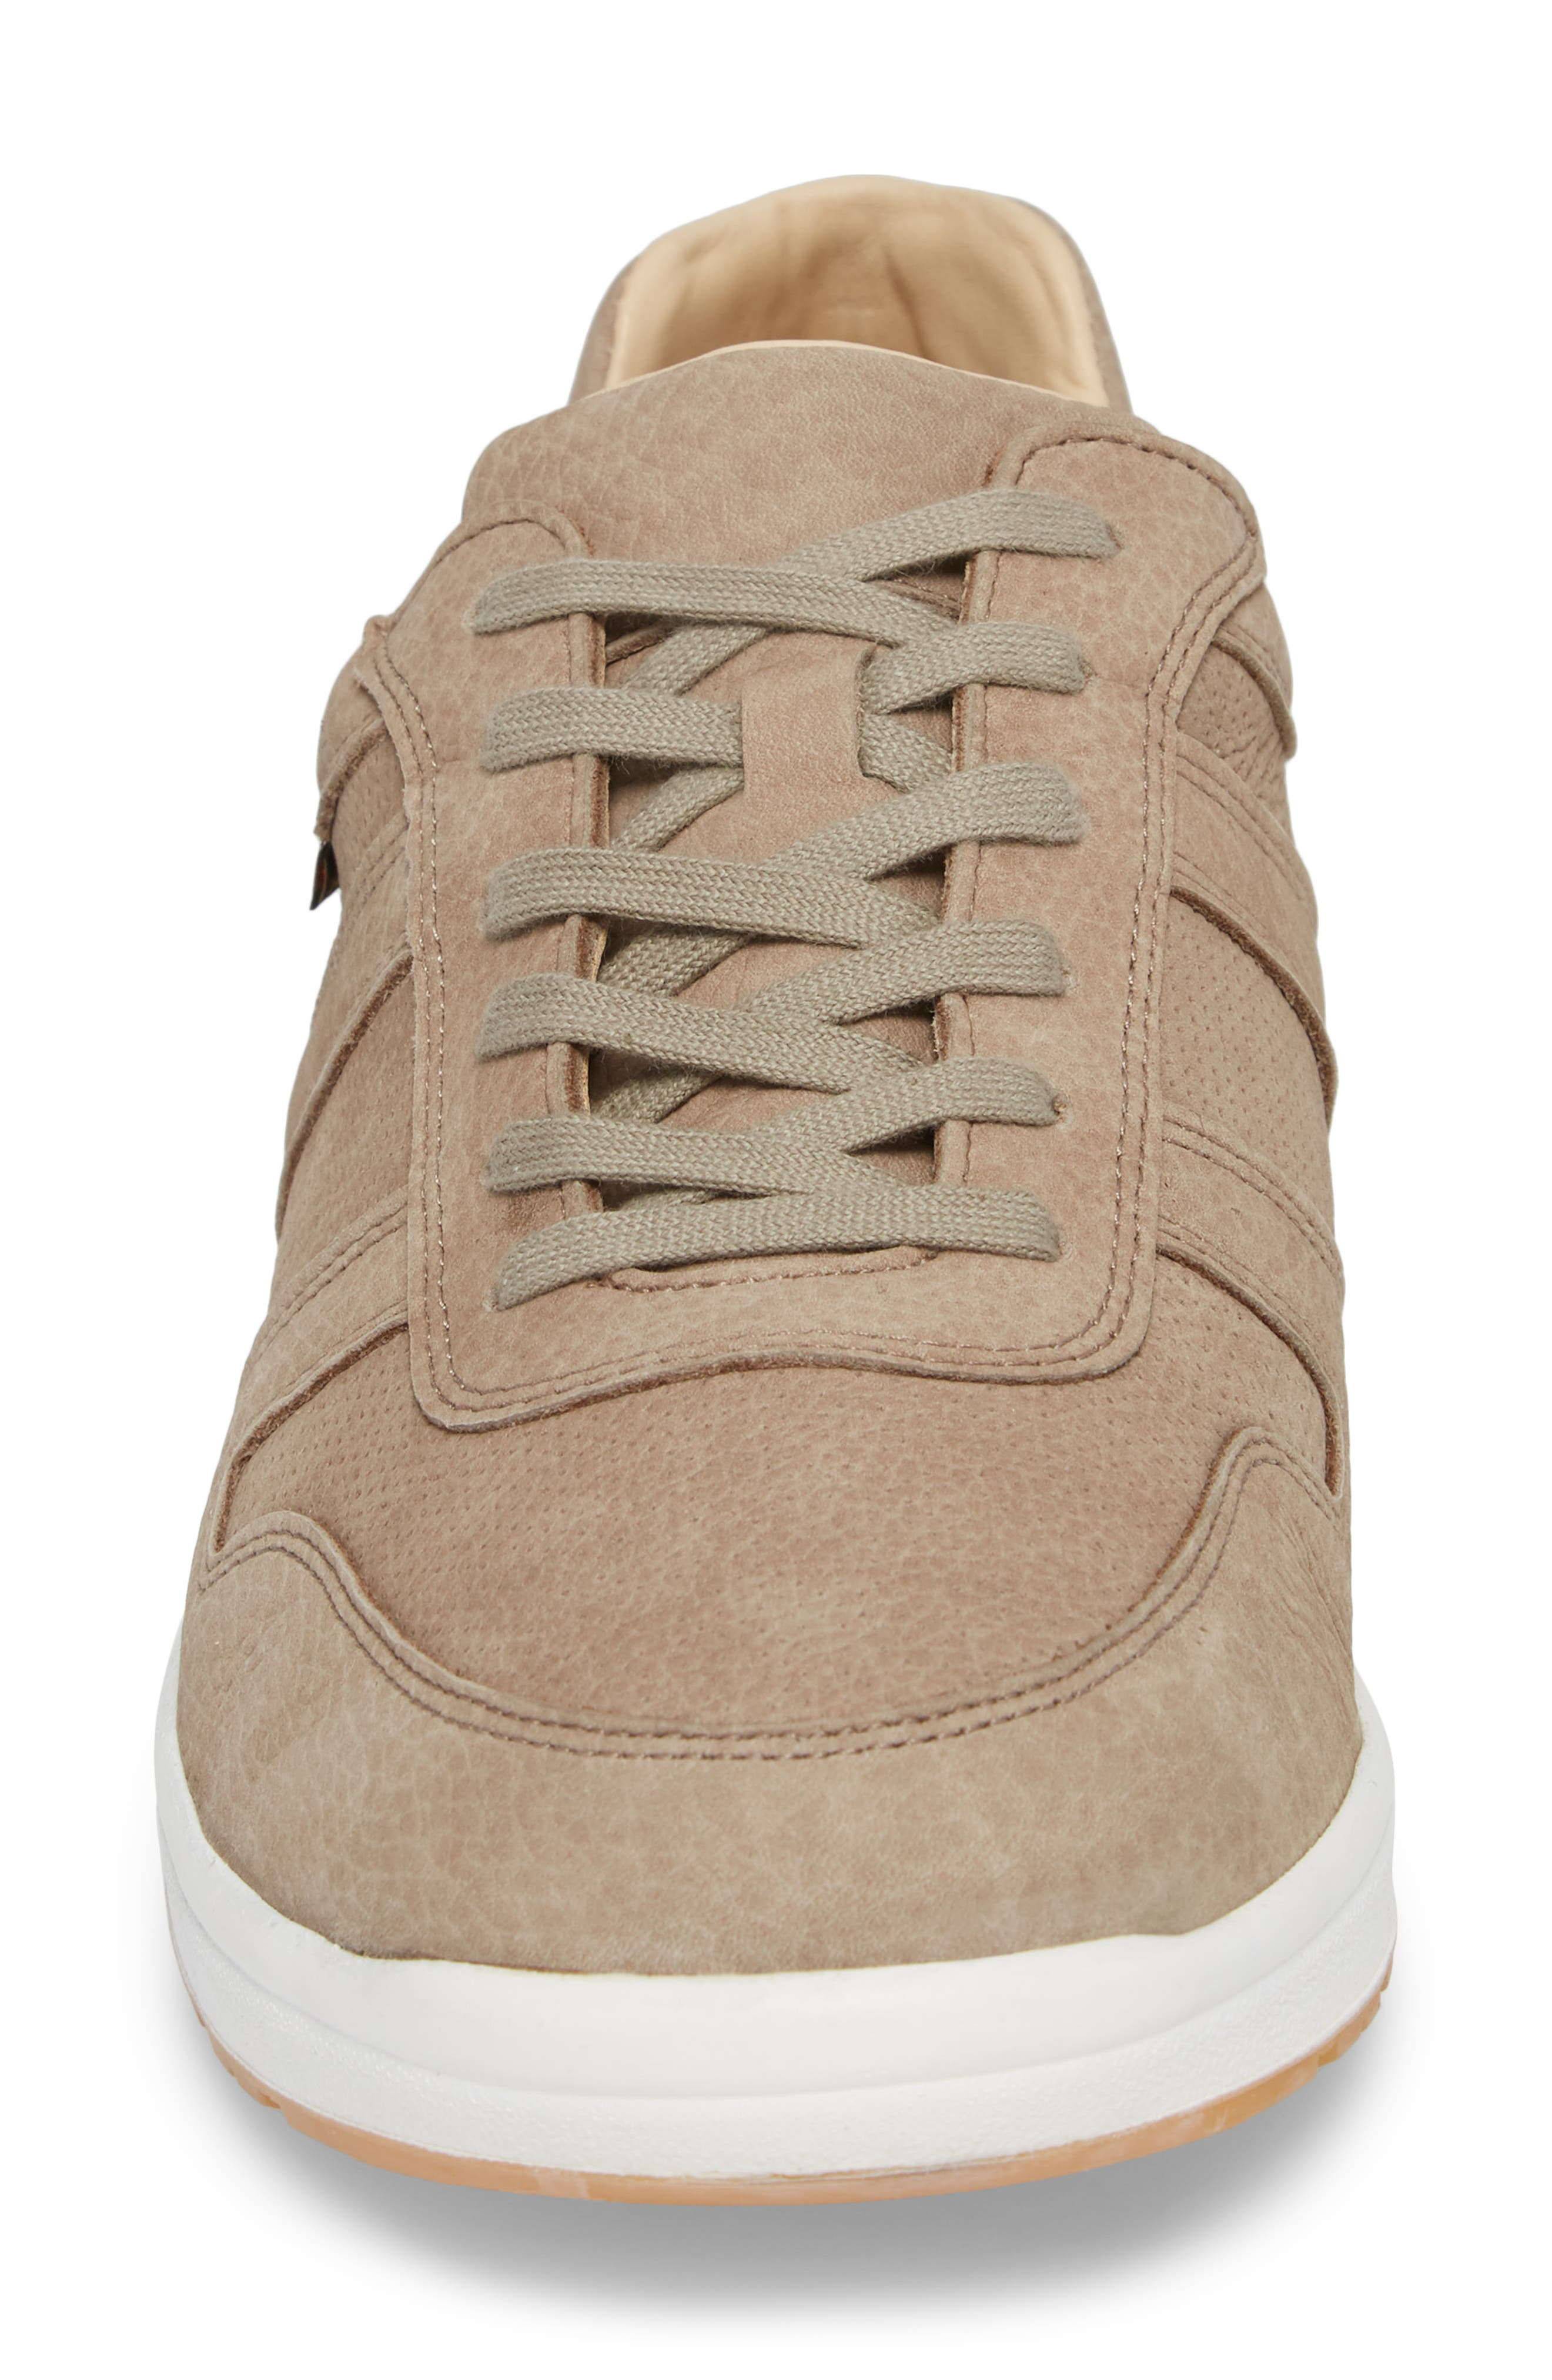 MEPHISTO, Vito Perforated Sneaker, Alternate thumbnail 4, color, SAND